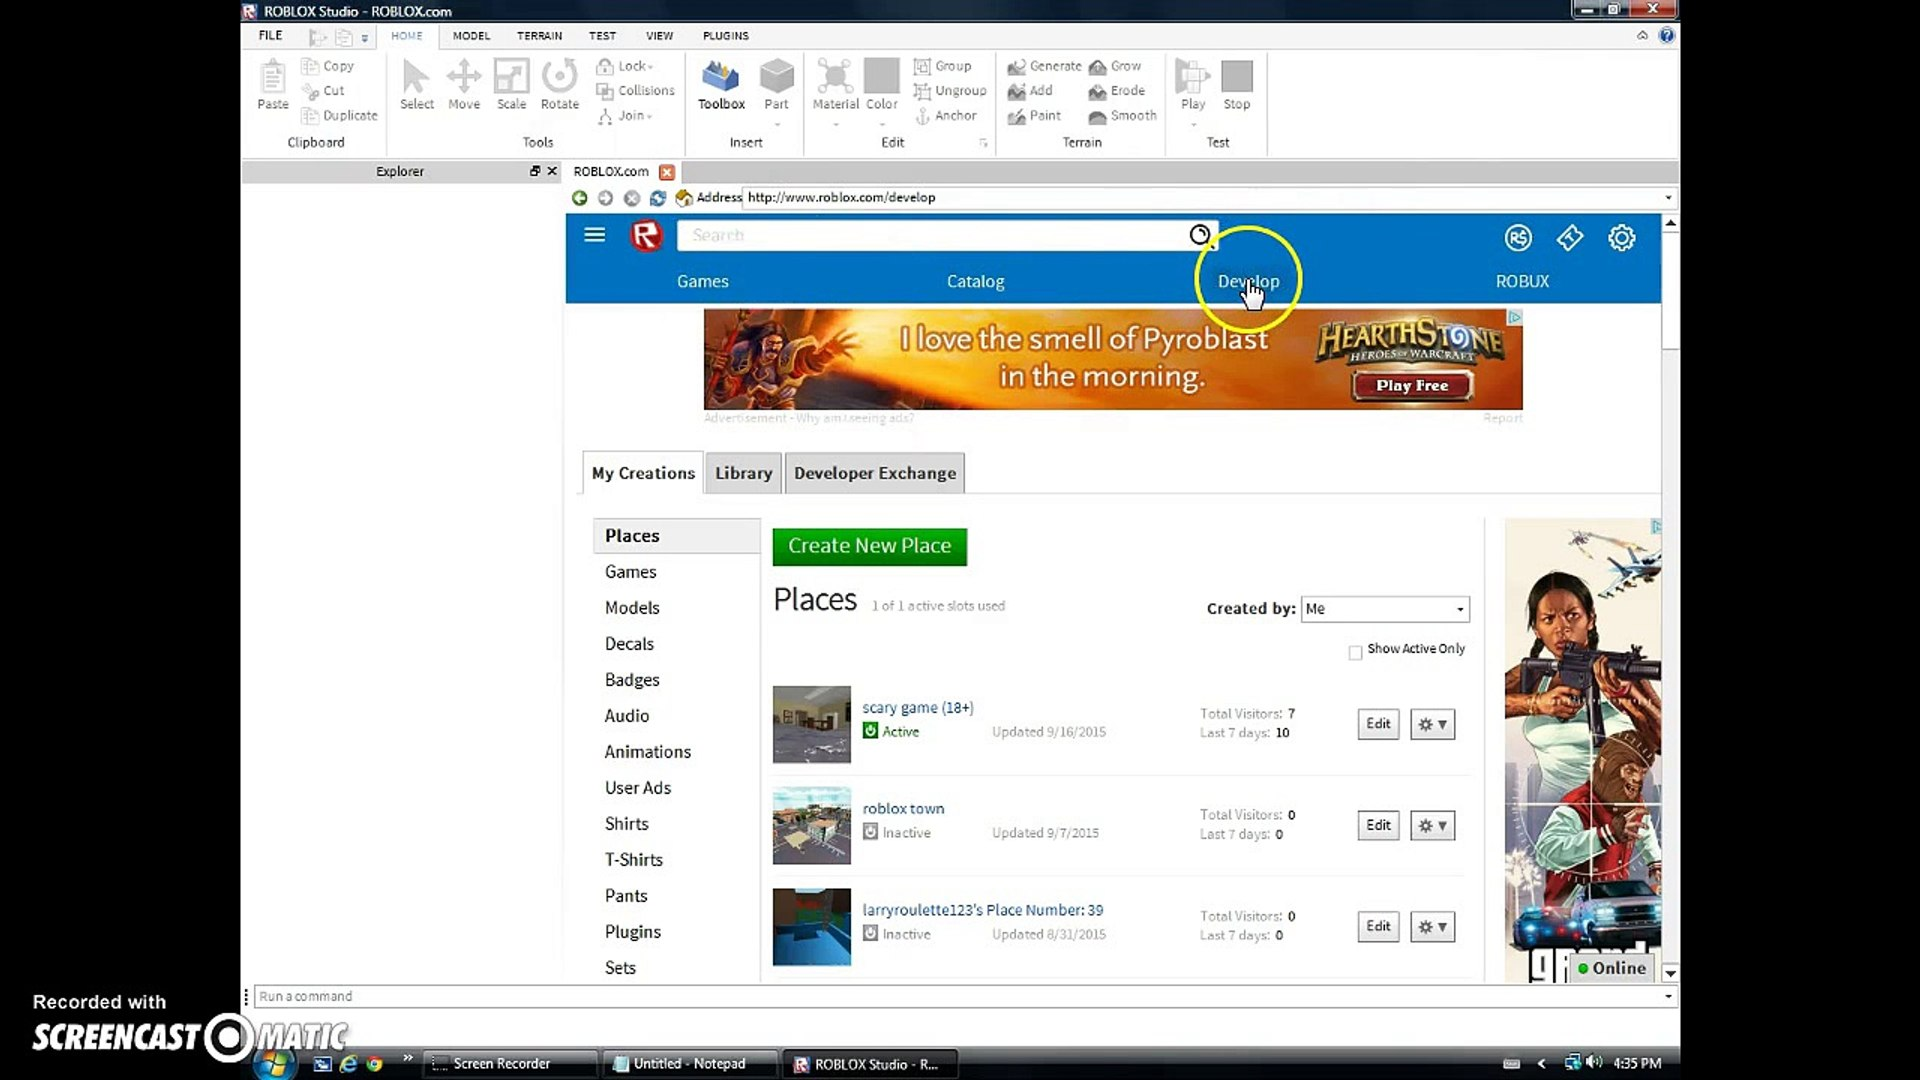 How To Install Plugins On Roblox Video Dailymotion